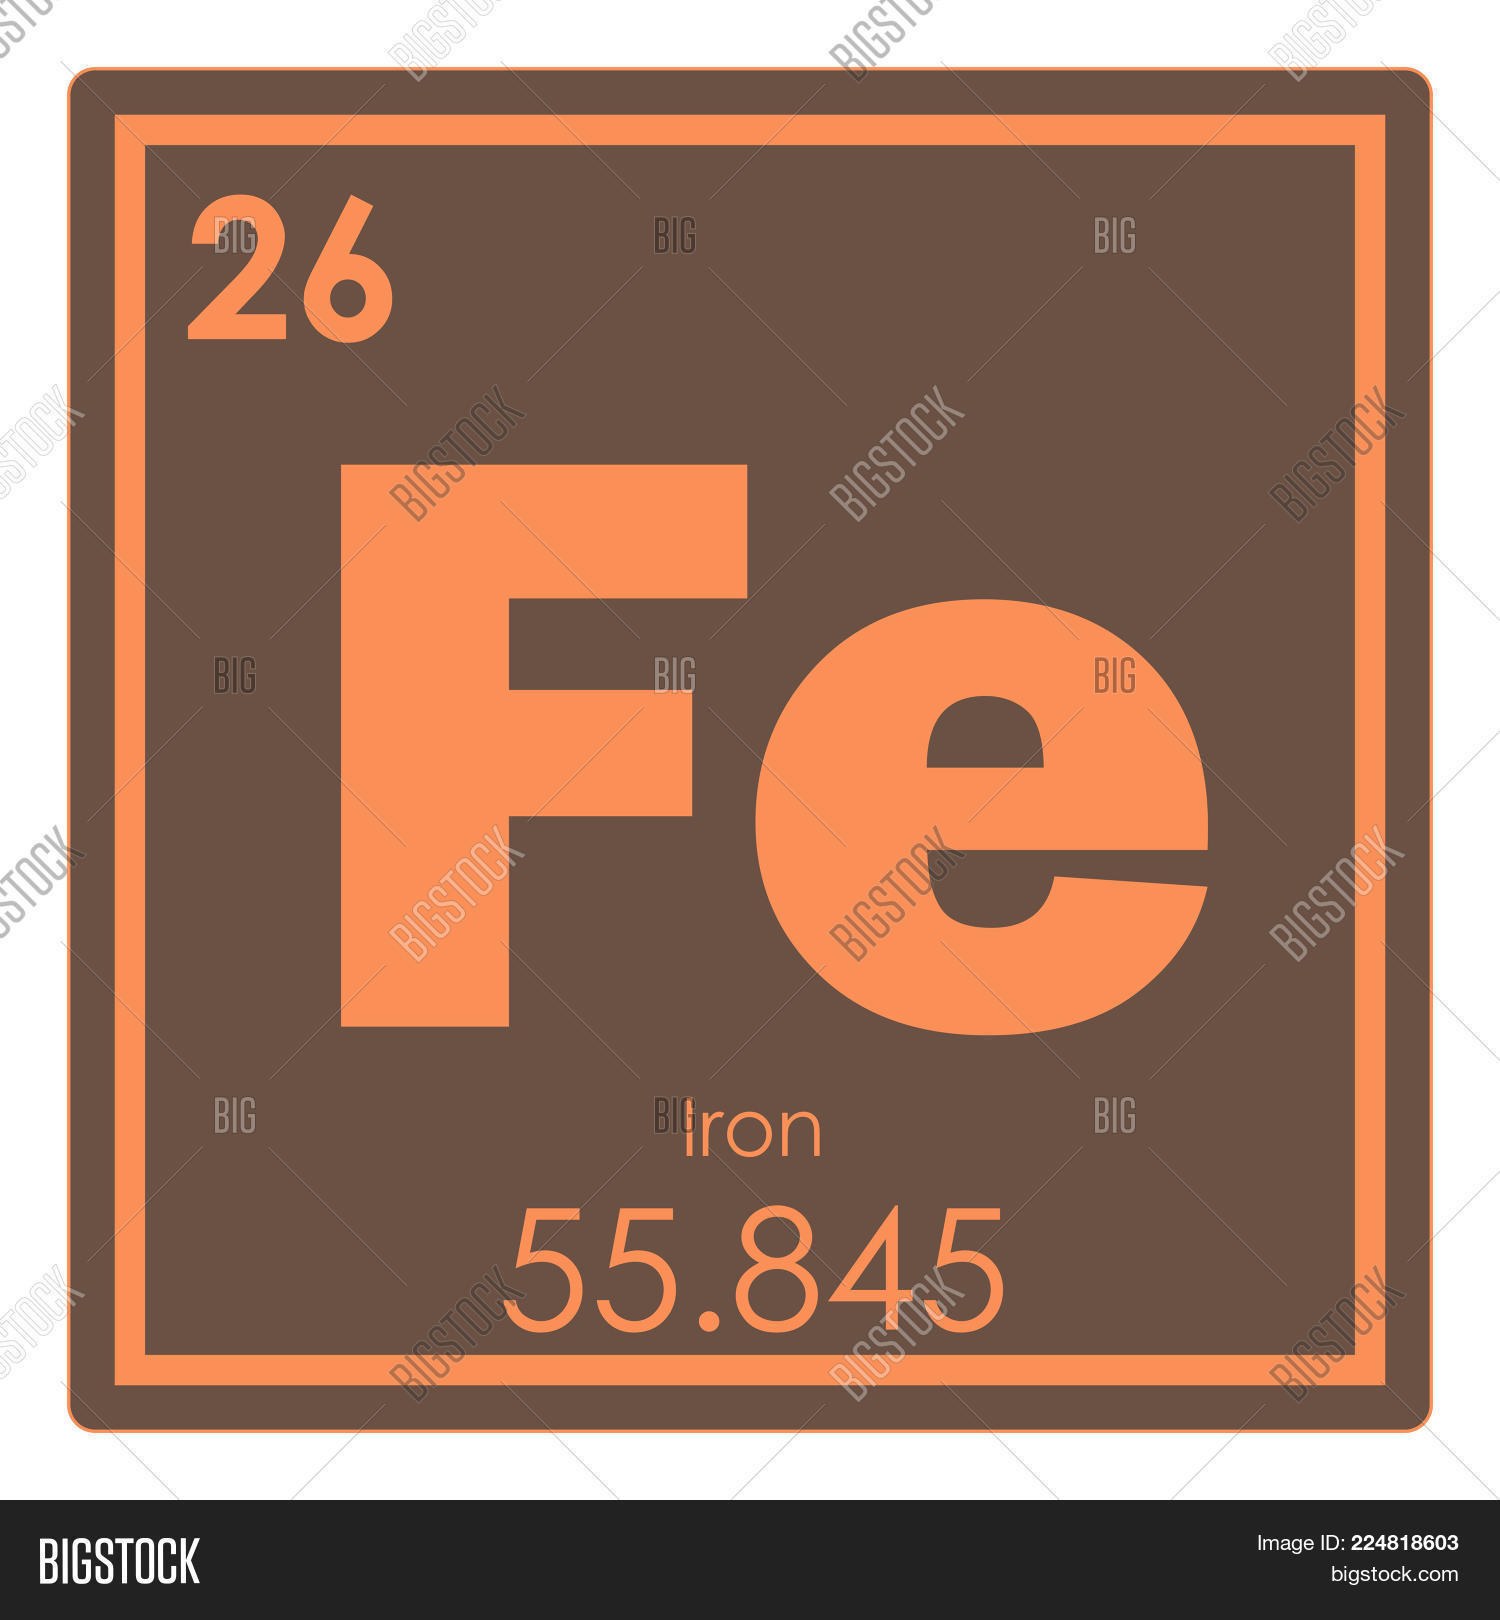 Iron chemical element image photo free trial bigstock iron chemical element periodic table science symbol urtaz Gallery